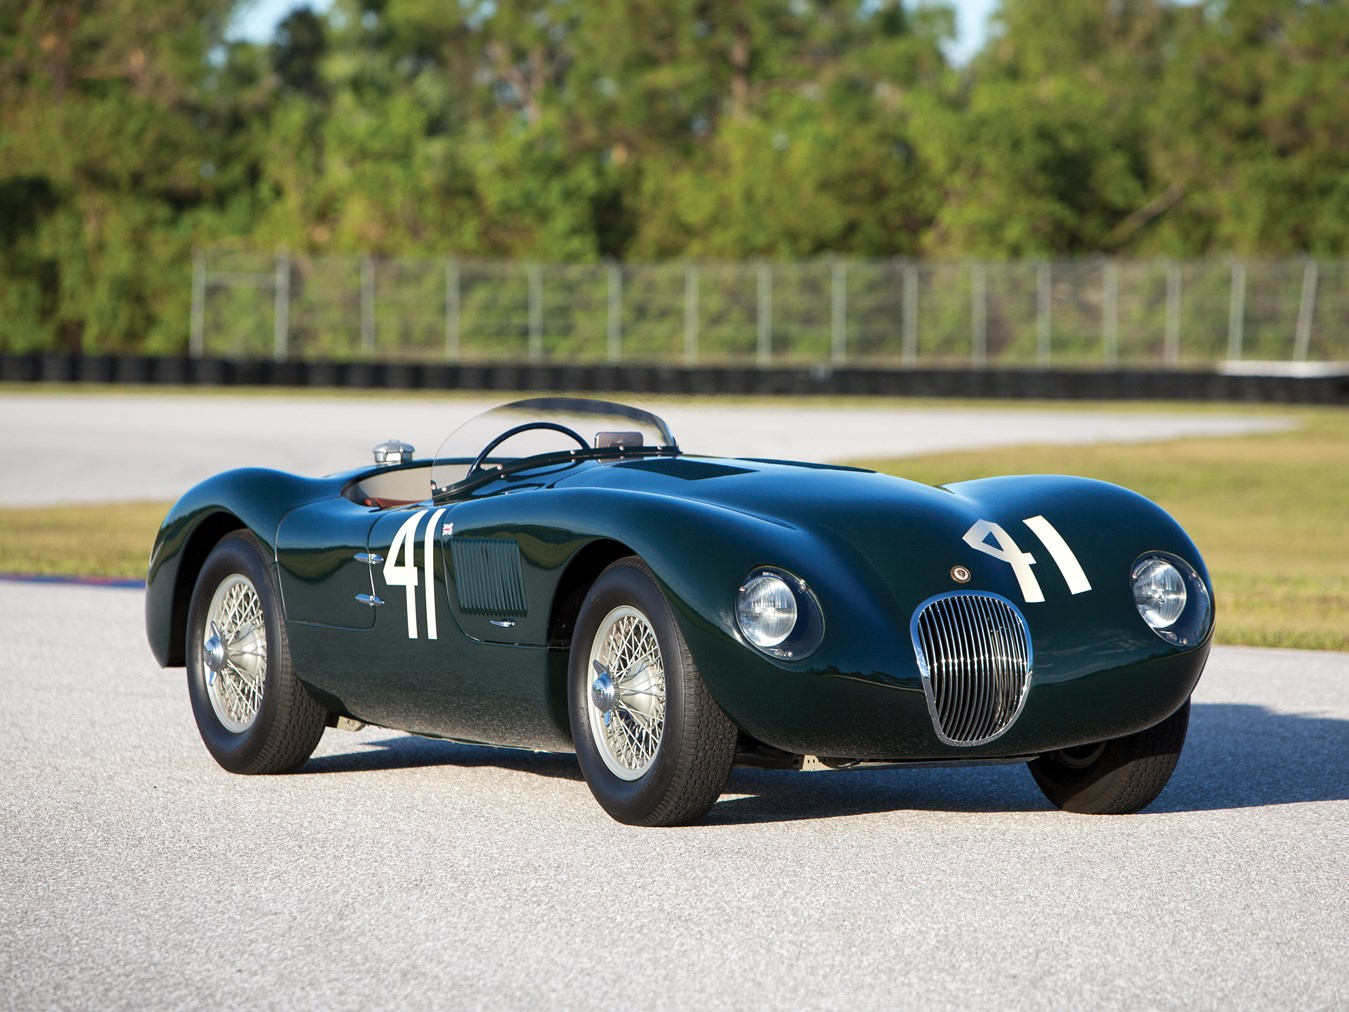 1952 jaguar c type raced by phil hill heads to auction autoevolution. Black Bedroom Furniture Sets. Home Design Ideas